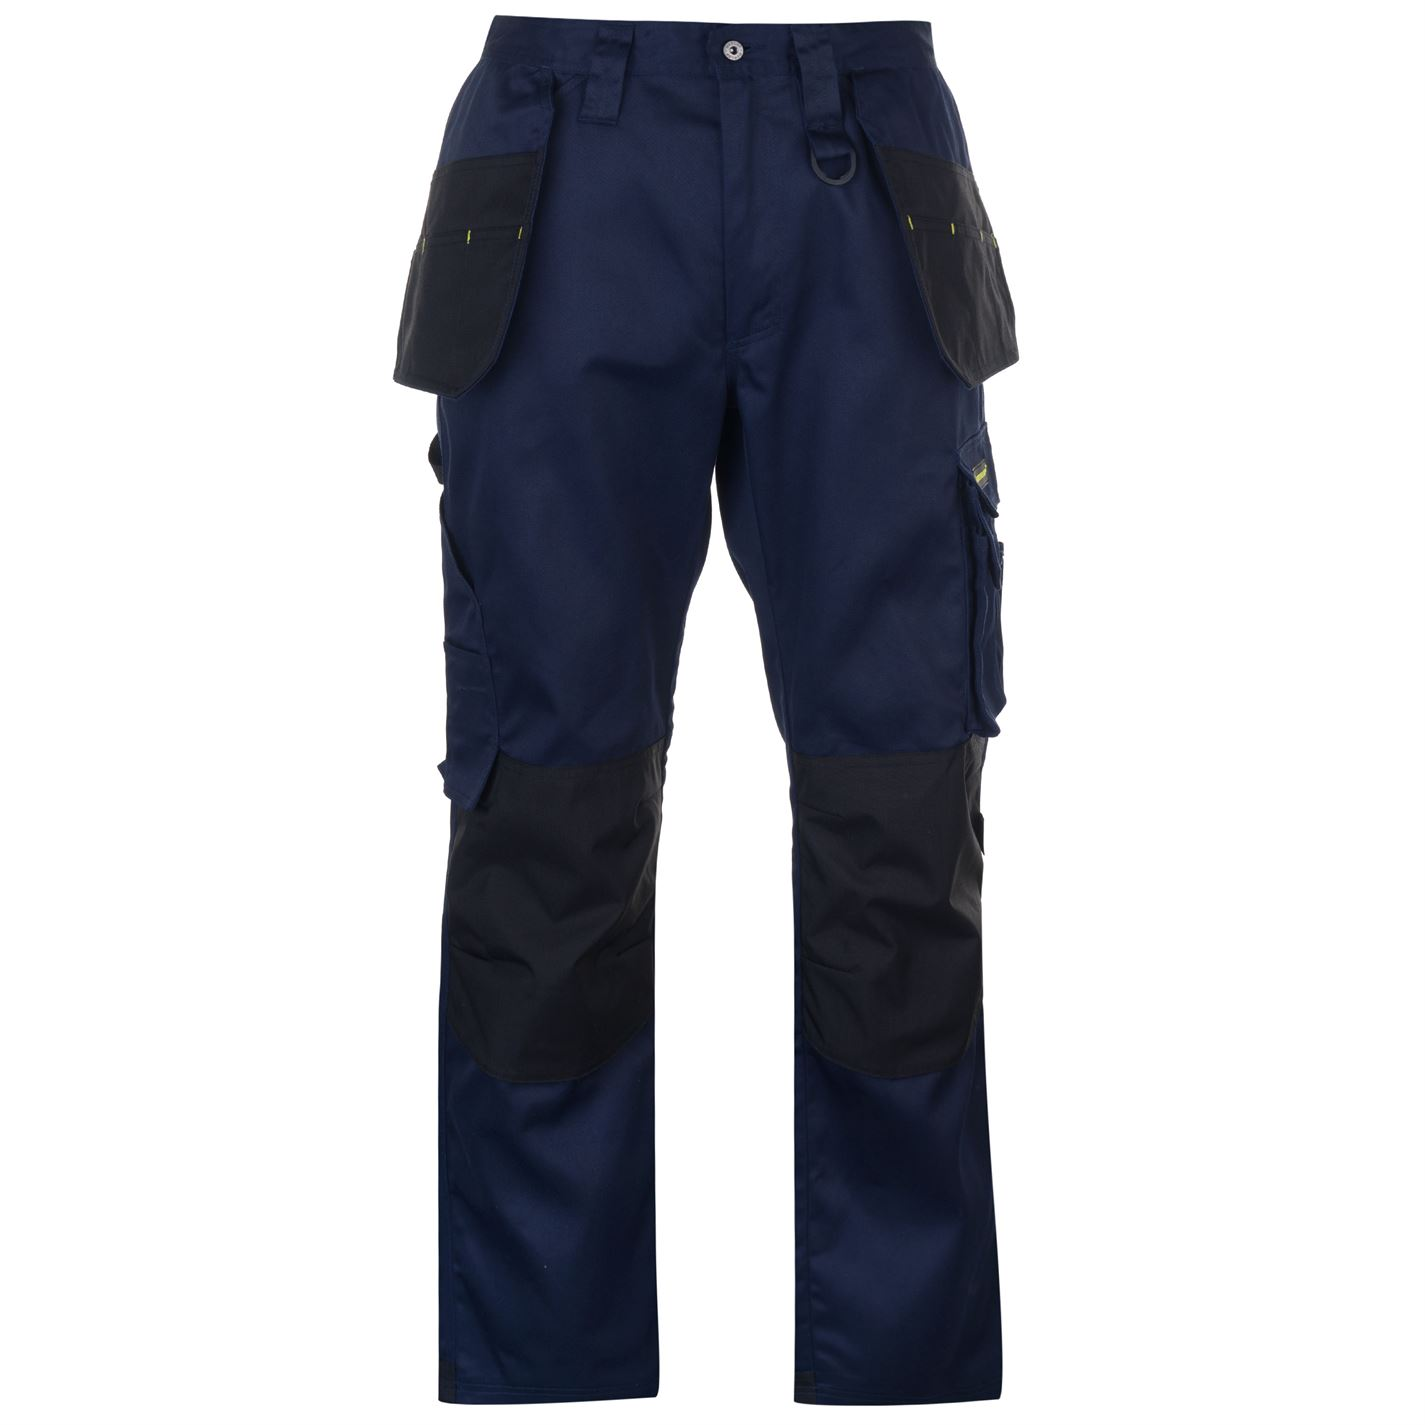 Dunlop On Site Trousers Mens Navy/Black